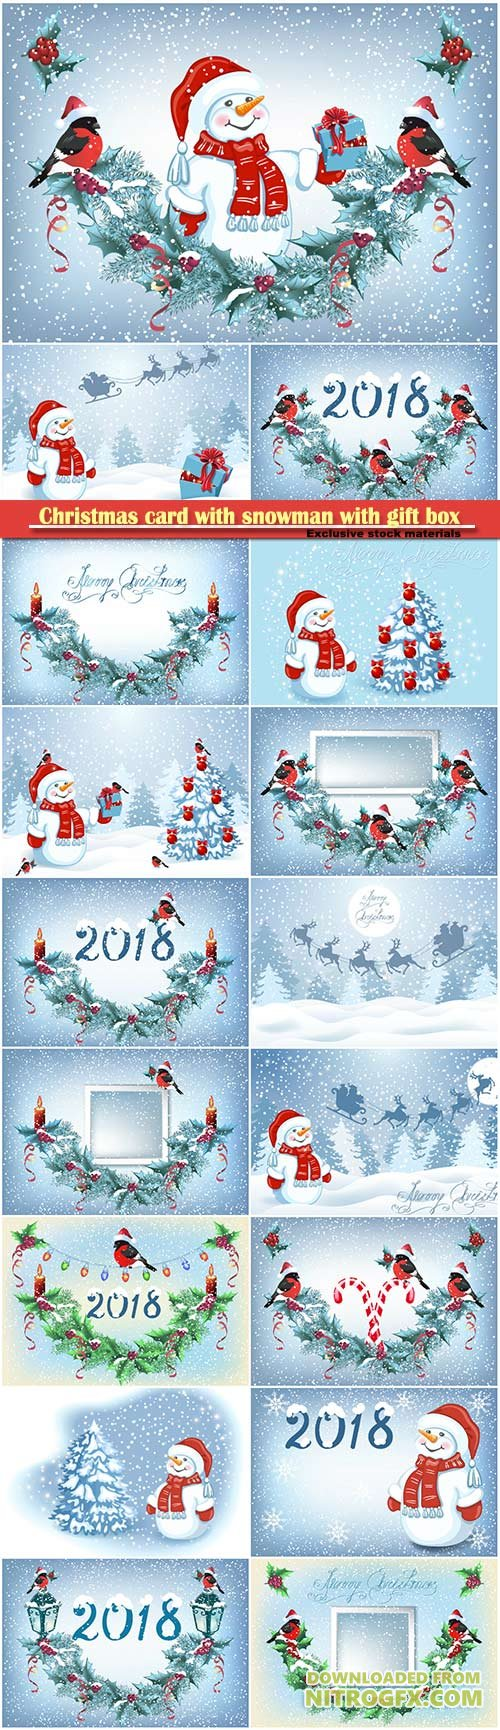 Christmas card with snowman with gift box and decorative garland with funny bullfinches